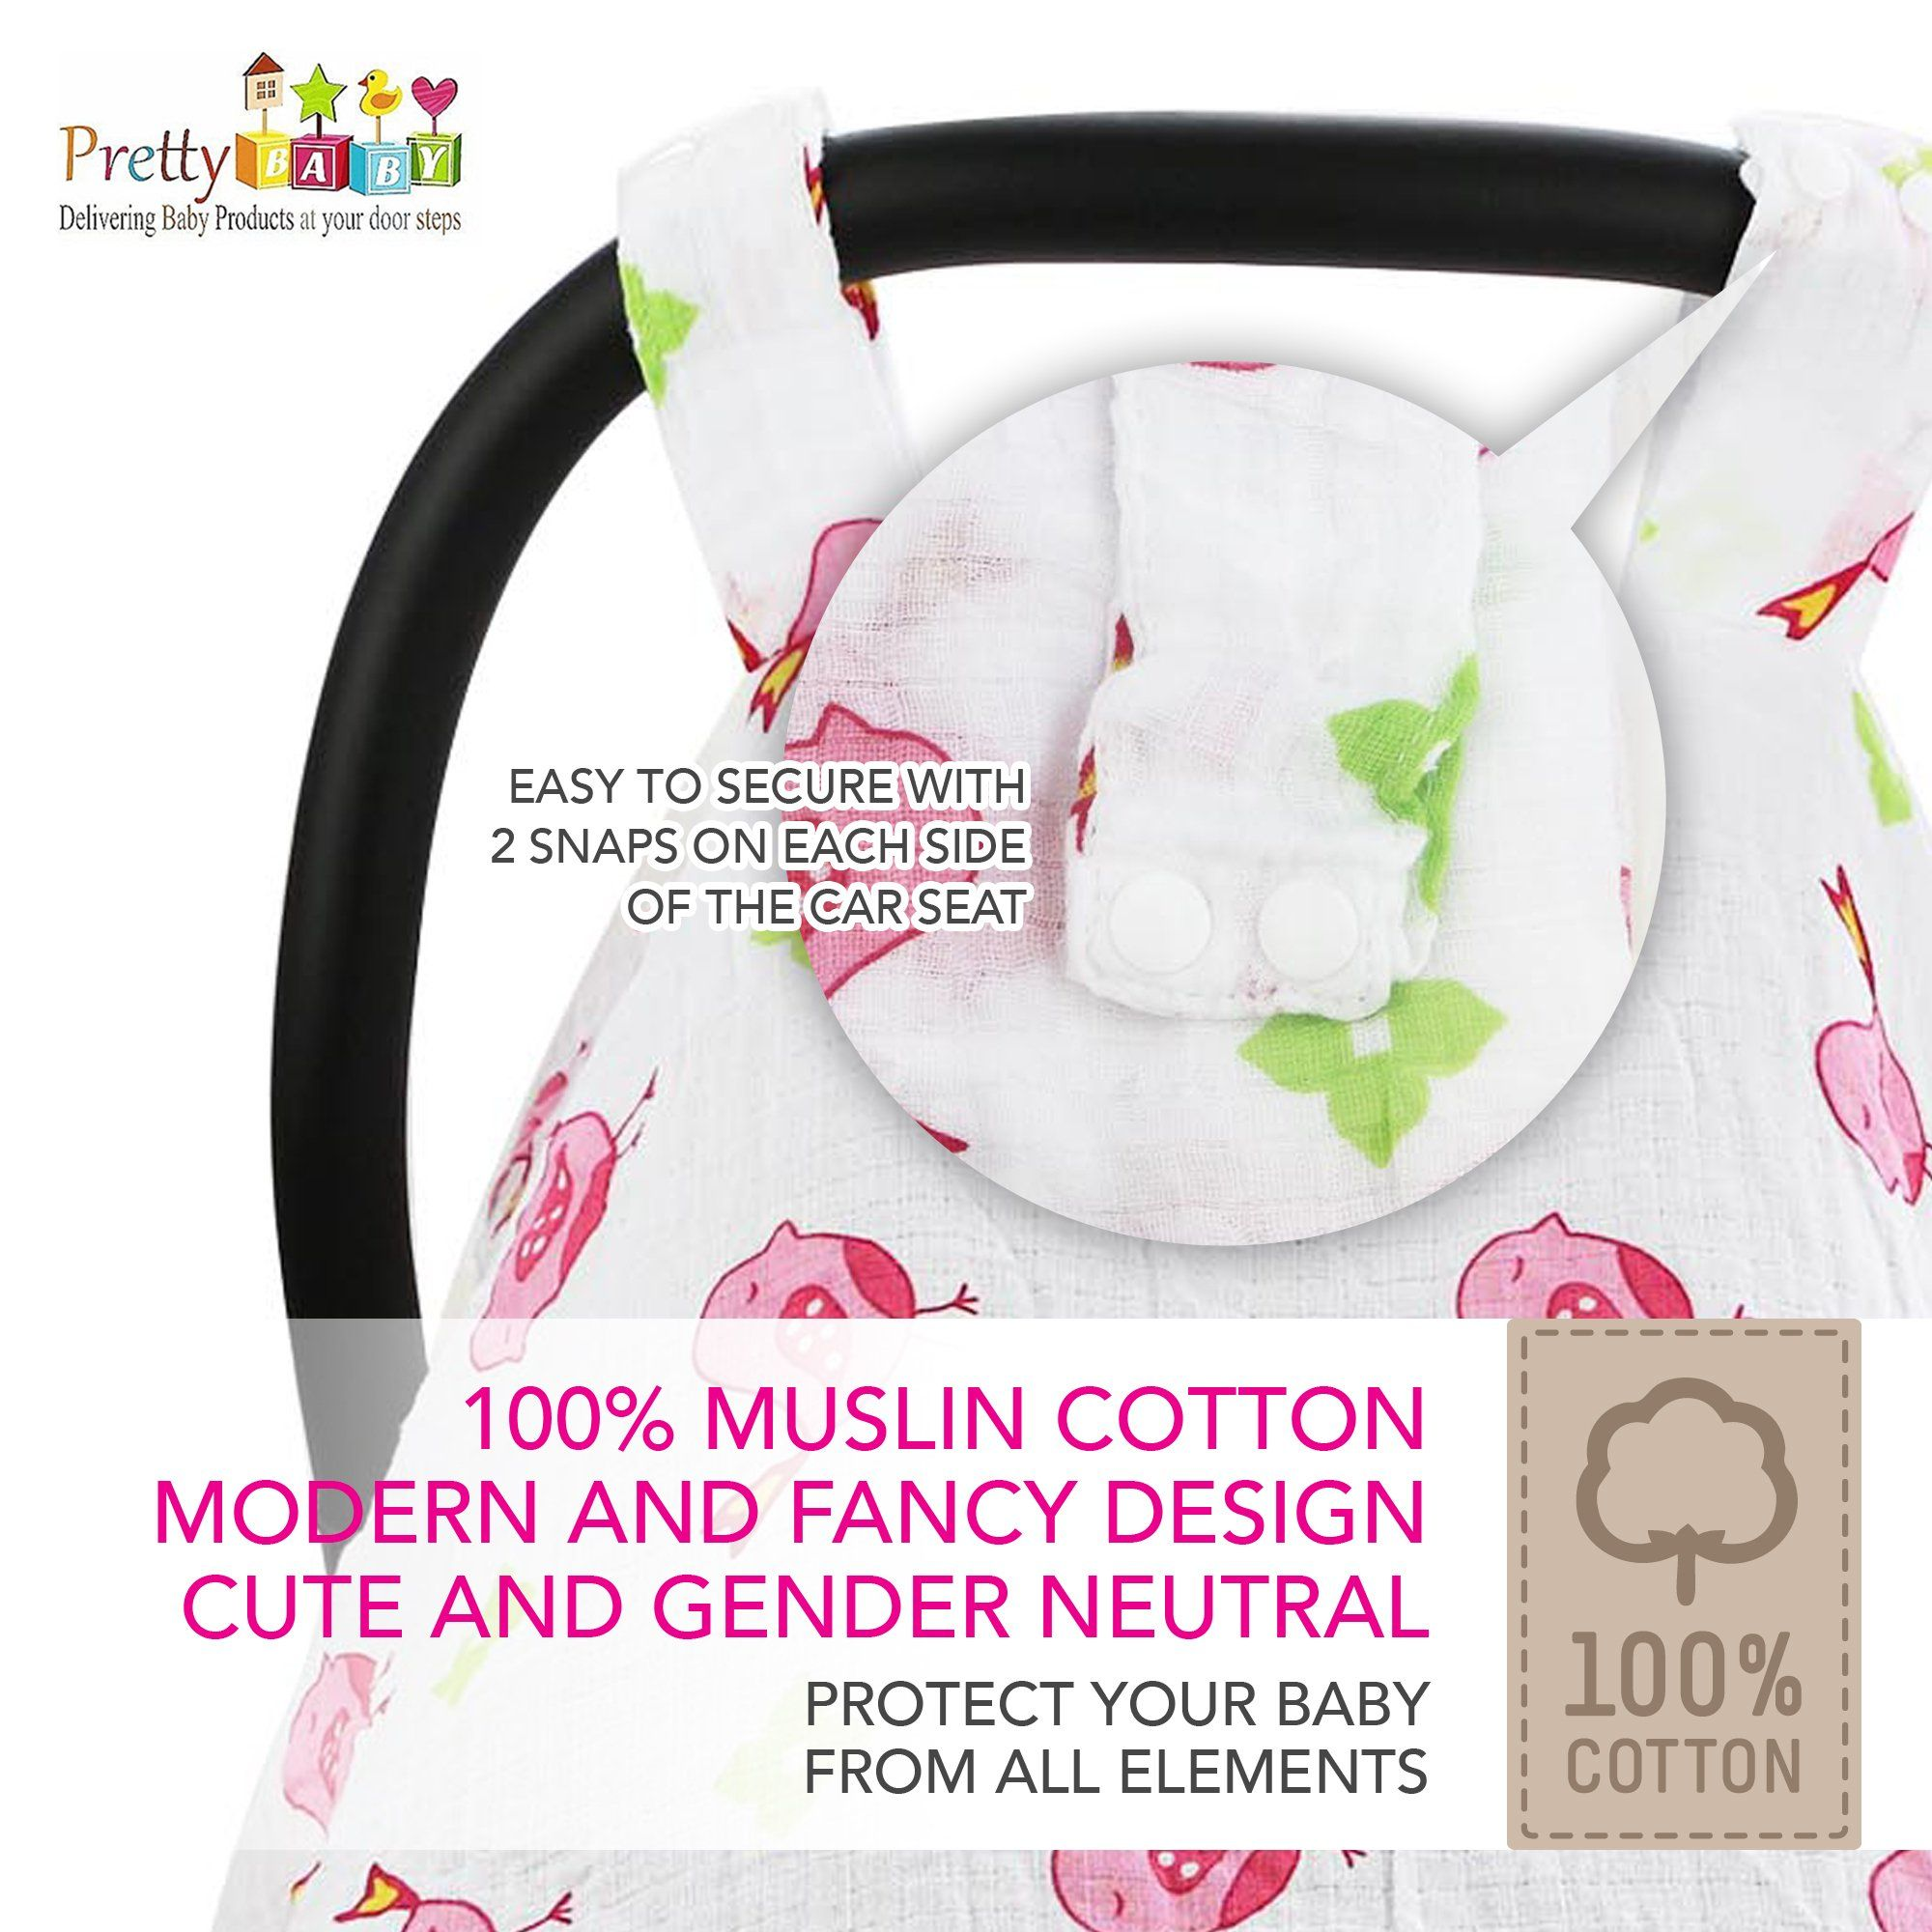 Baby car seat covers to protect from bugs hashtag1 with